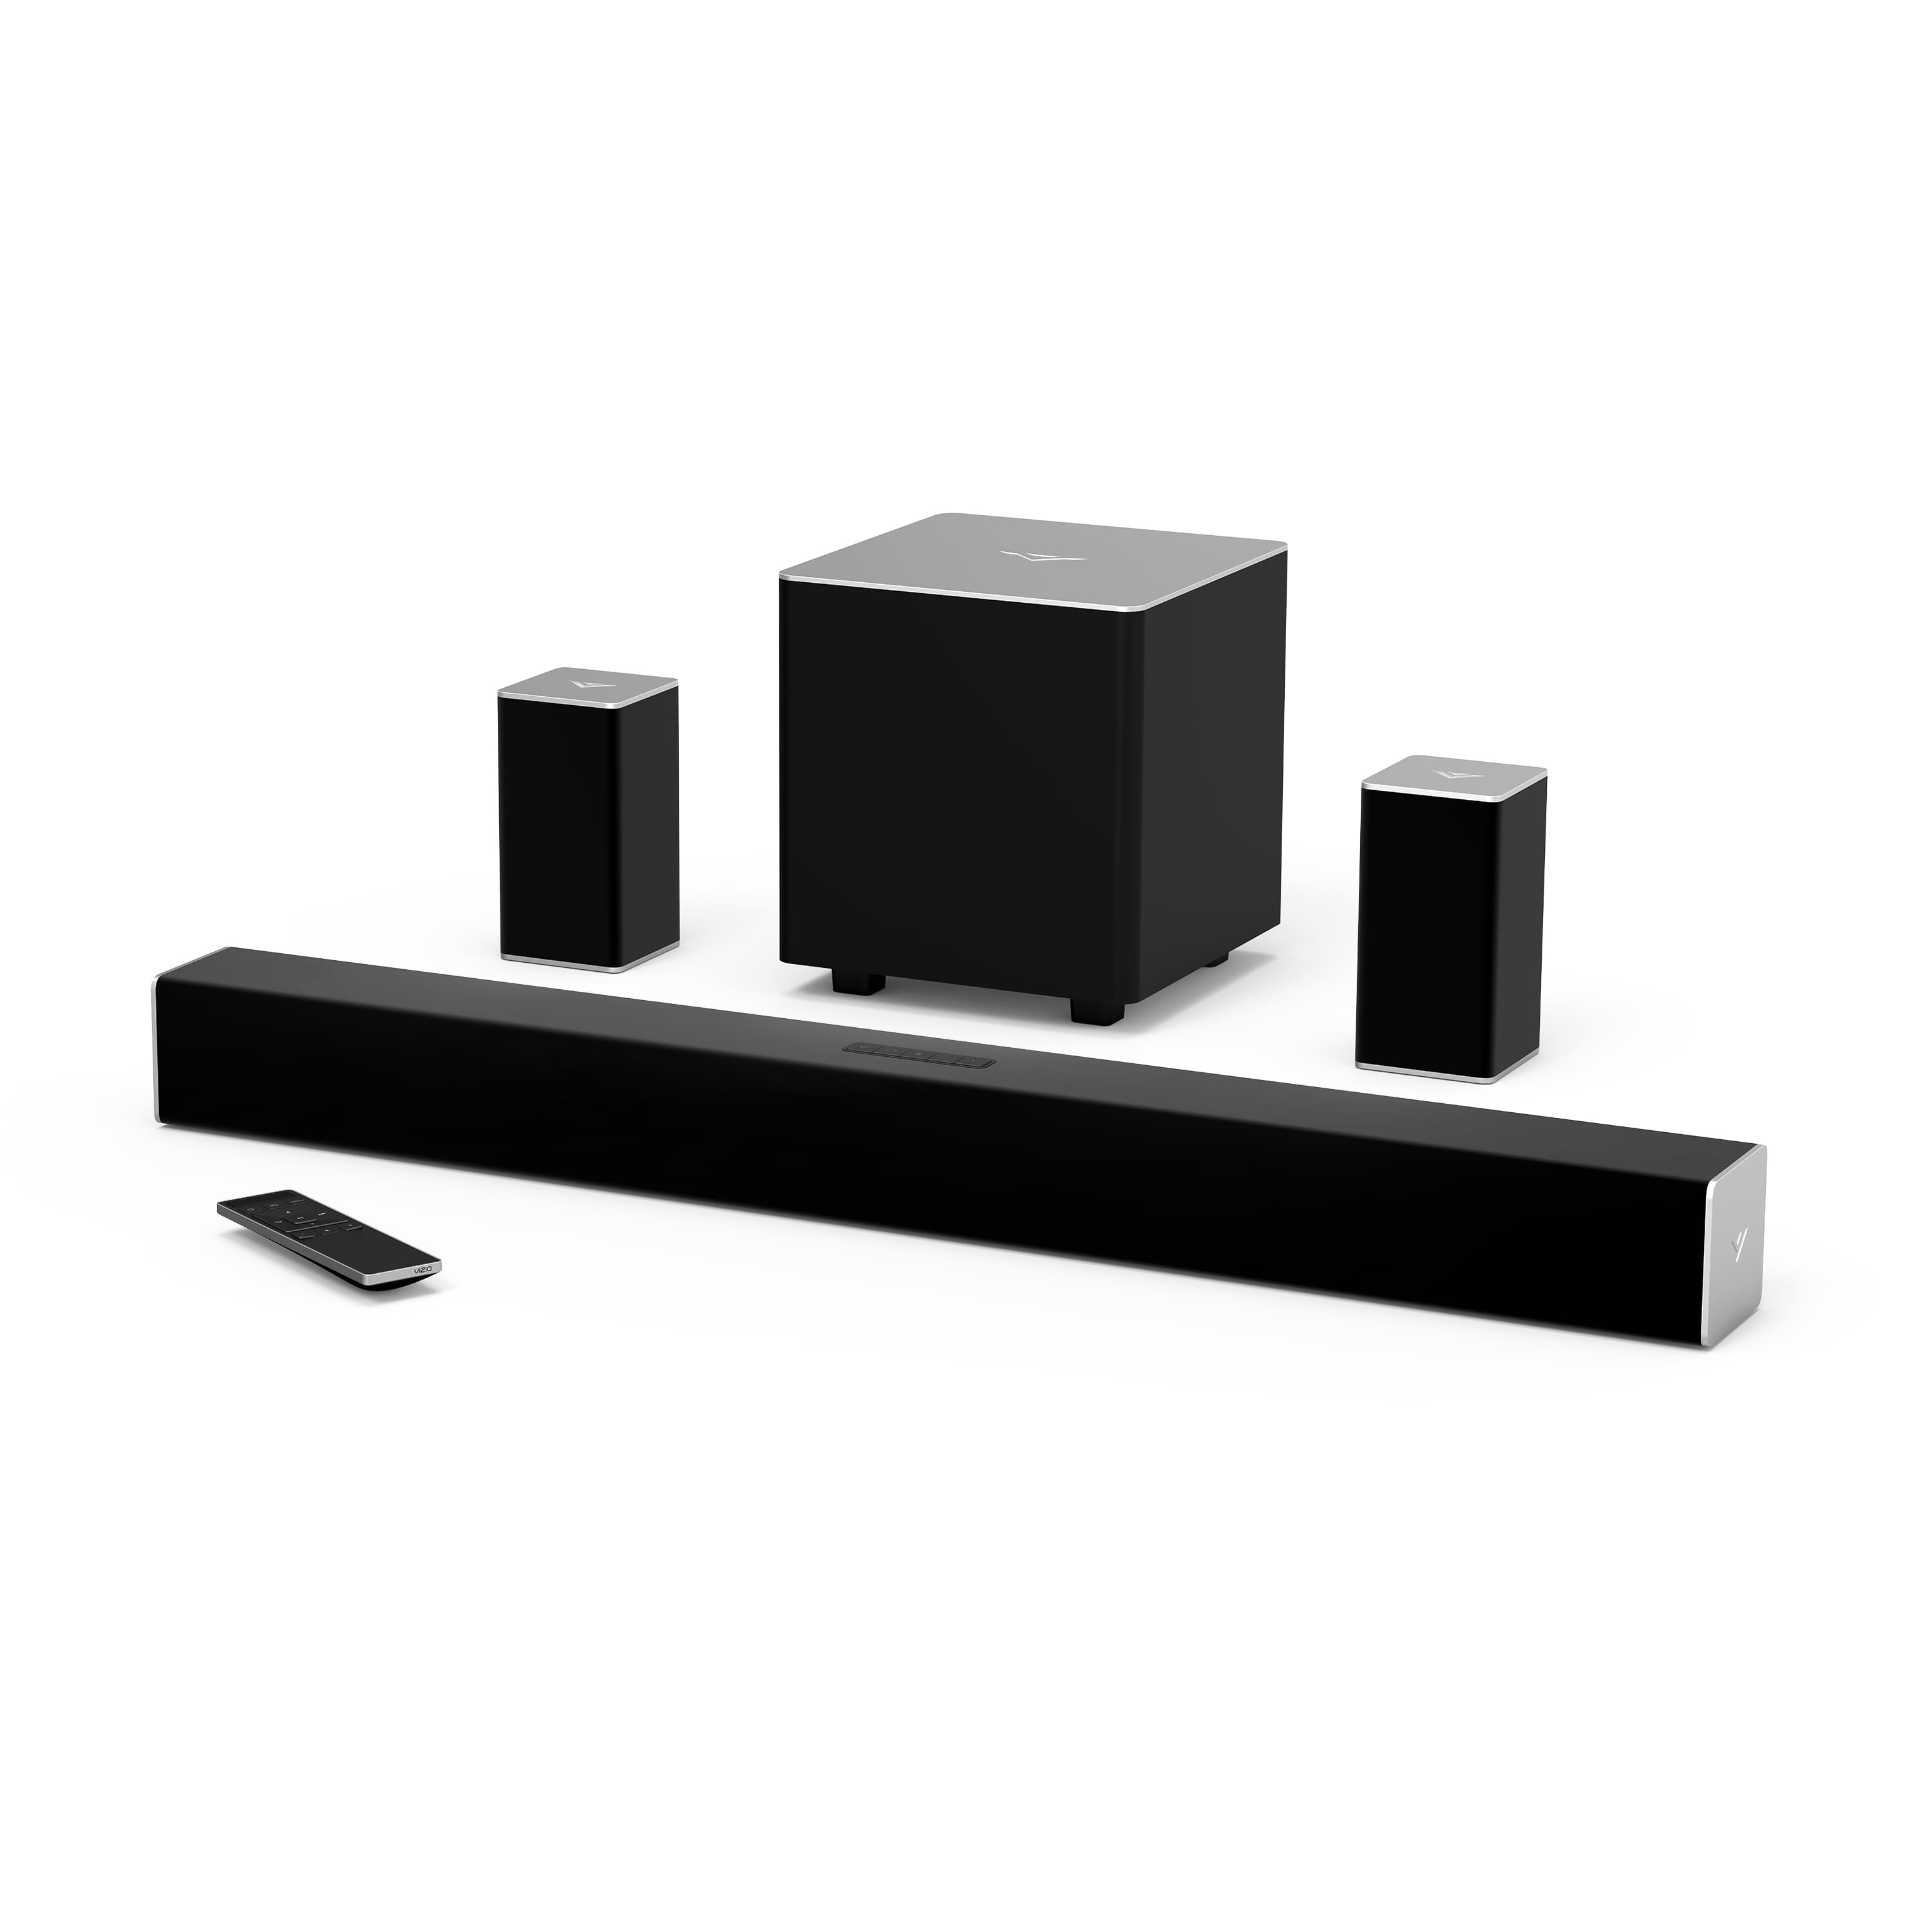 """VIZIO 32"""" 5.1 Channel Soundbar System with Wireless Subwoofer and Rear Speakers - SB3251n-E0 $98.98 *B&M Only, YMMV*"""